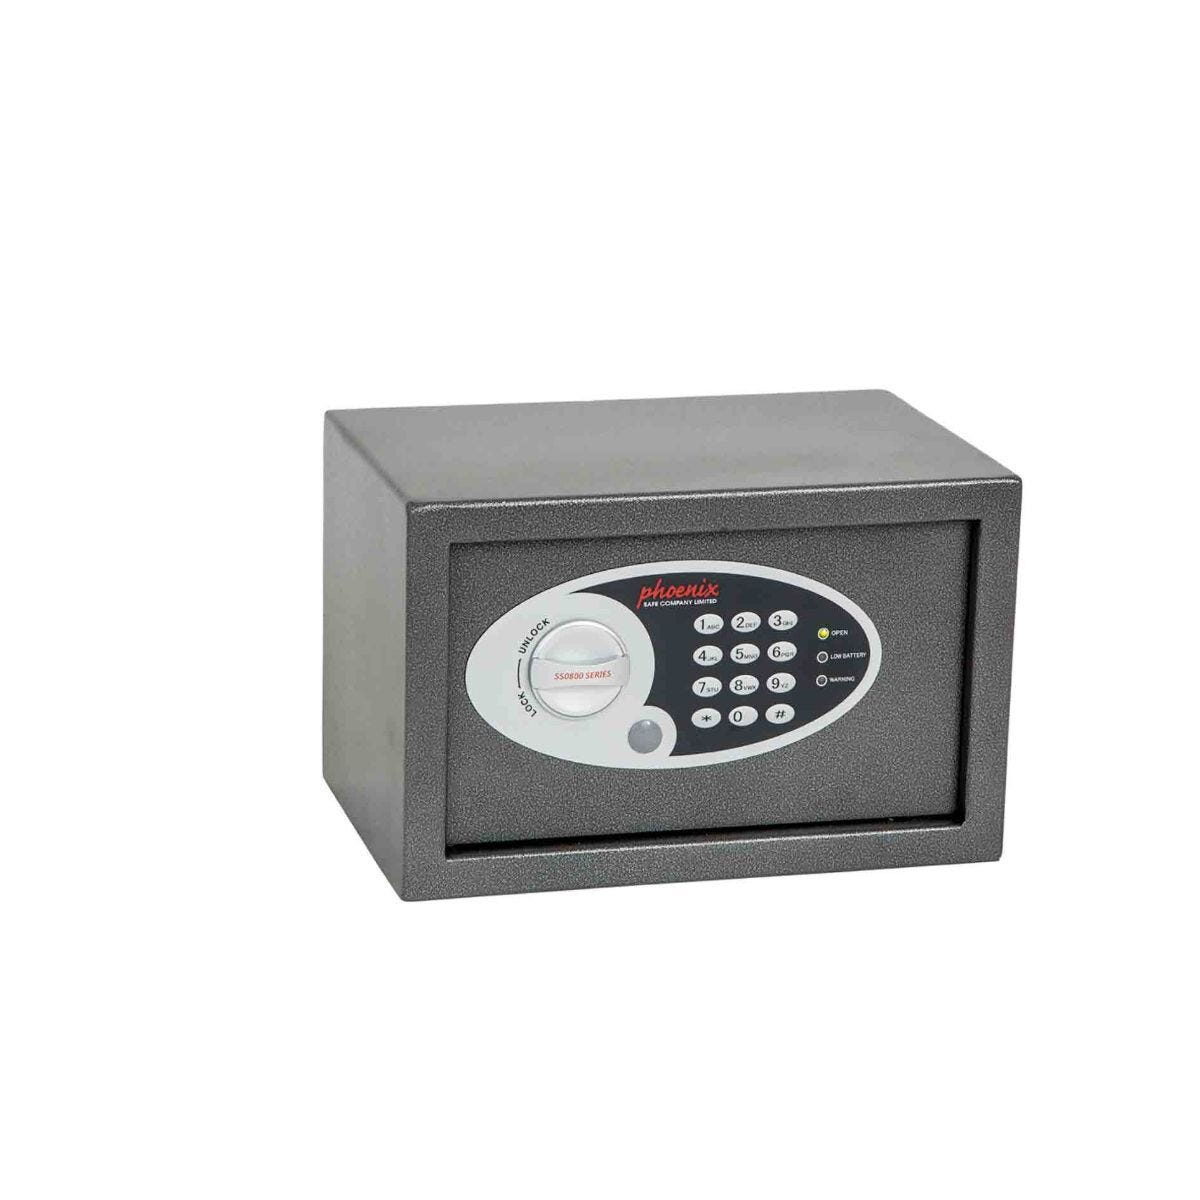 Phoenix Vela Home and Office Security Safe with Electronic Lock Size 1